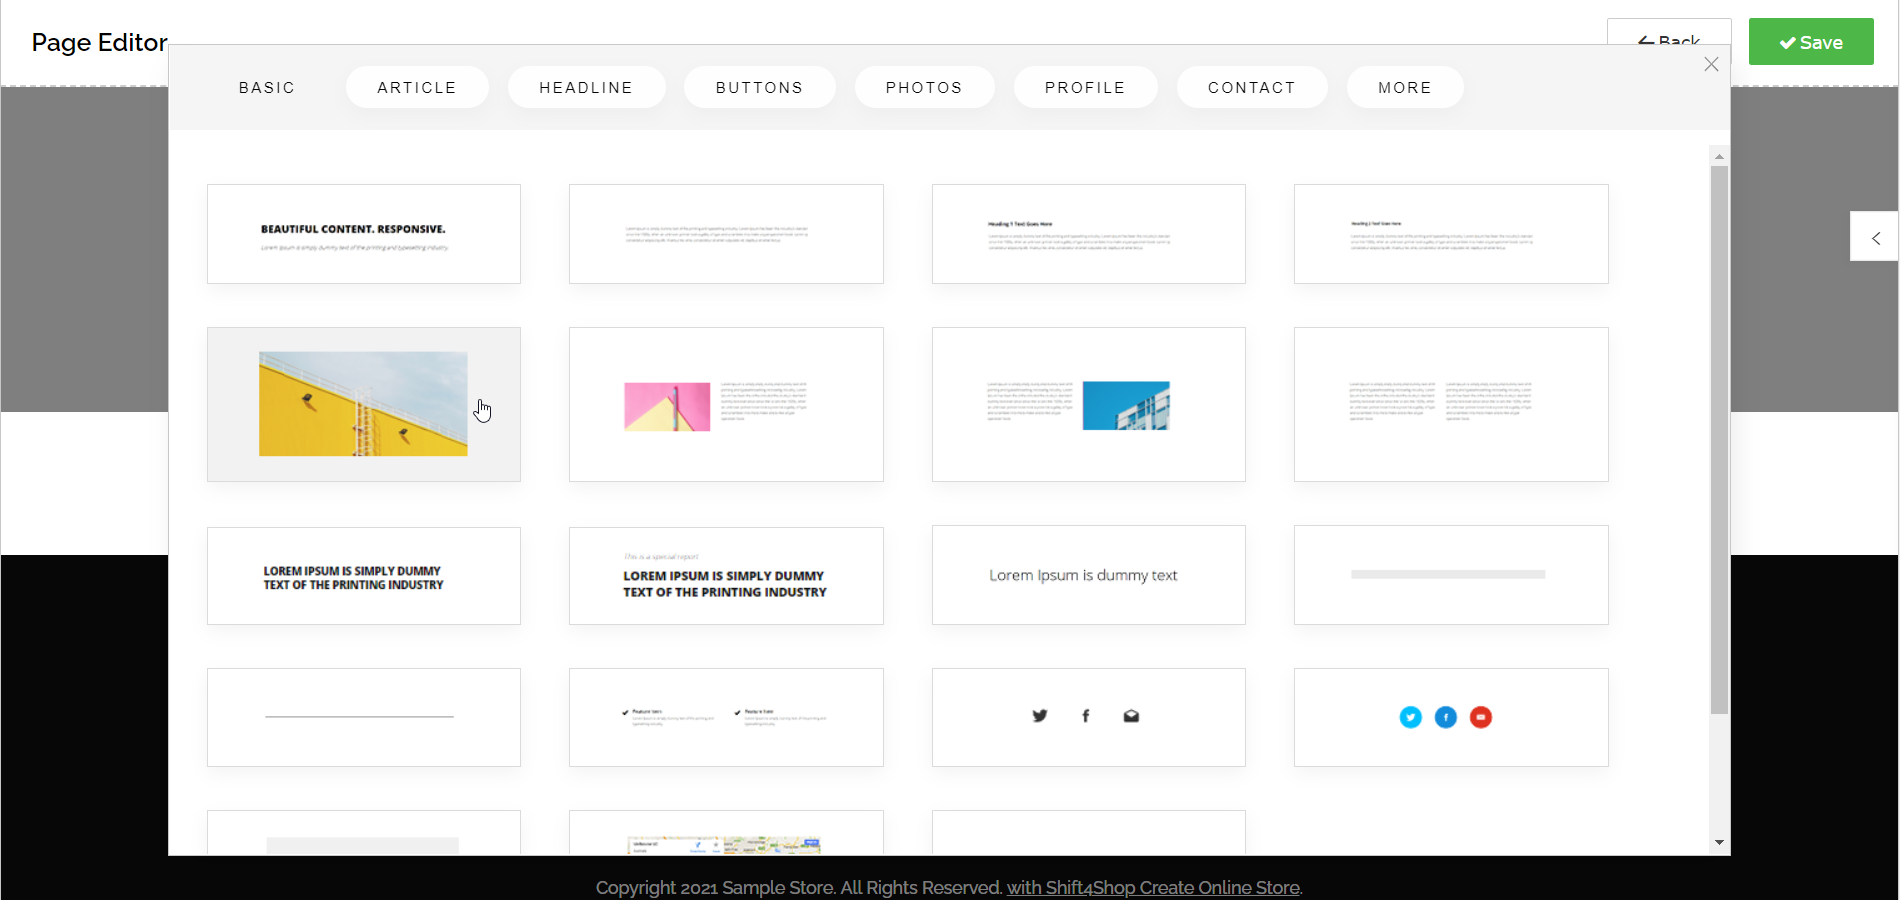 Using the Page Editor - Choosing Stock Image Block from Snippets Menu